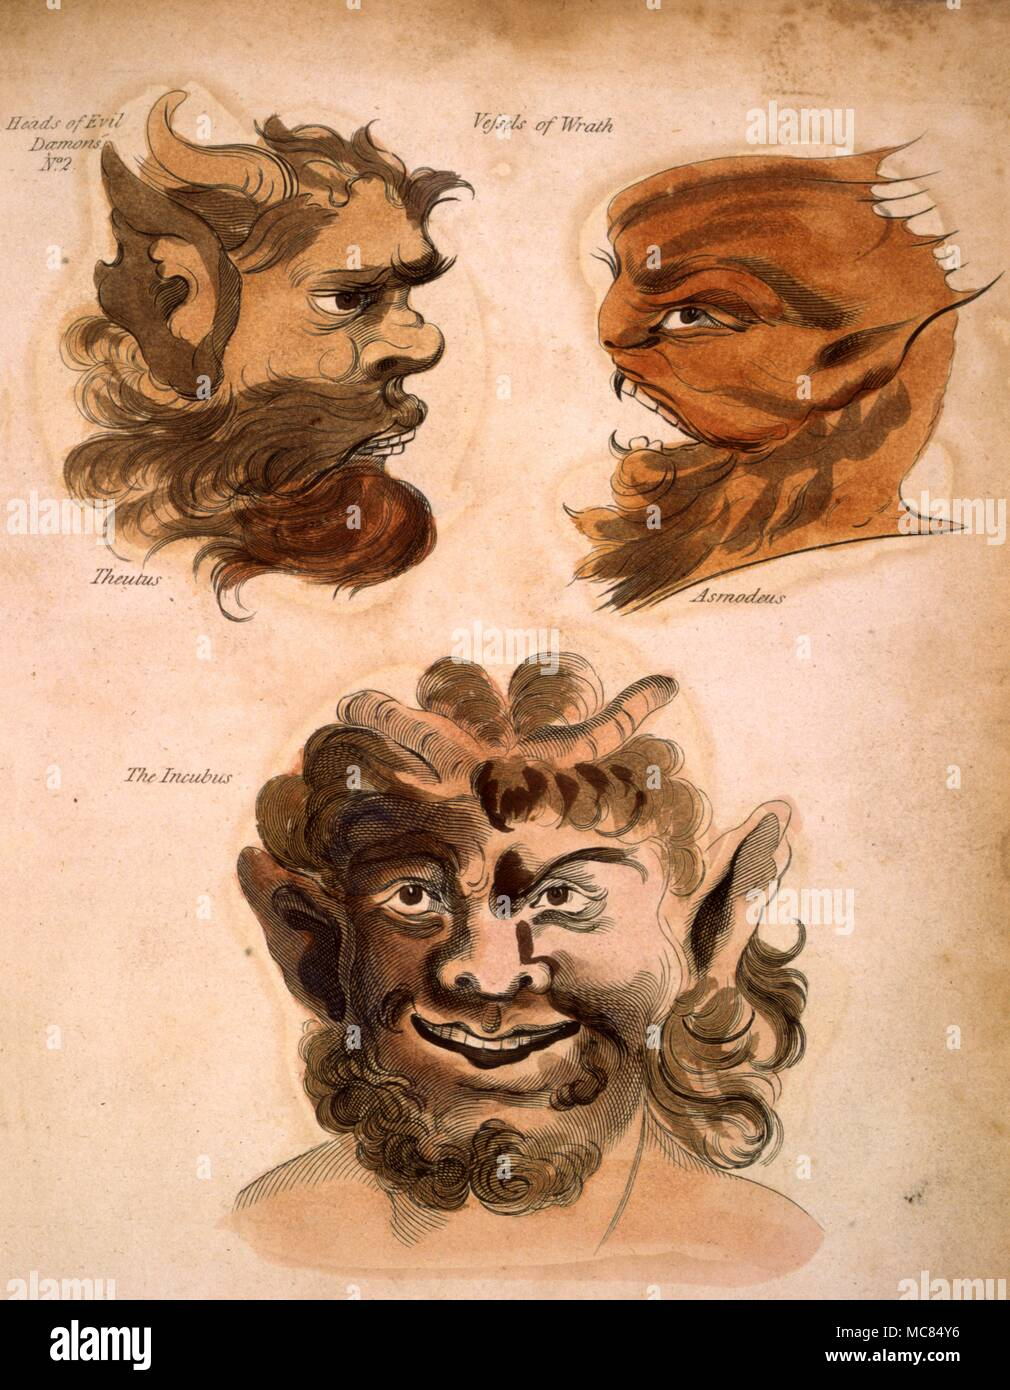 Faces if Conjured Demons 'Vessels of Wrath', portayaed by Francis Barrett, who named the demons.  From Barrett's 'The Magus, or Celestial Intelligencer', 1801. - Stock Image